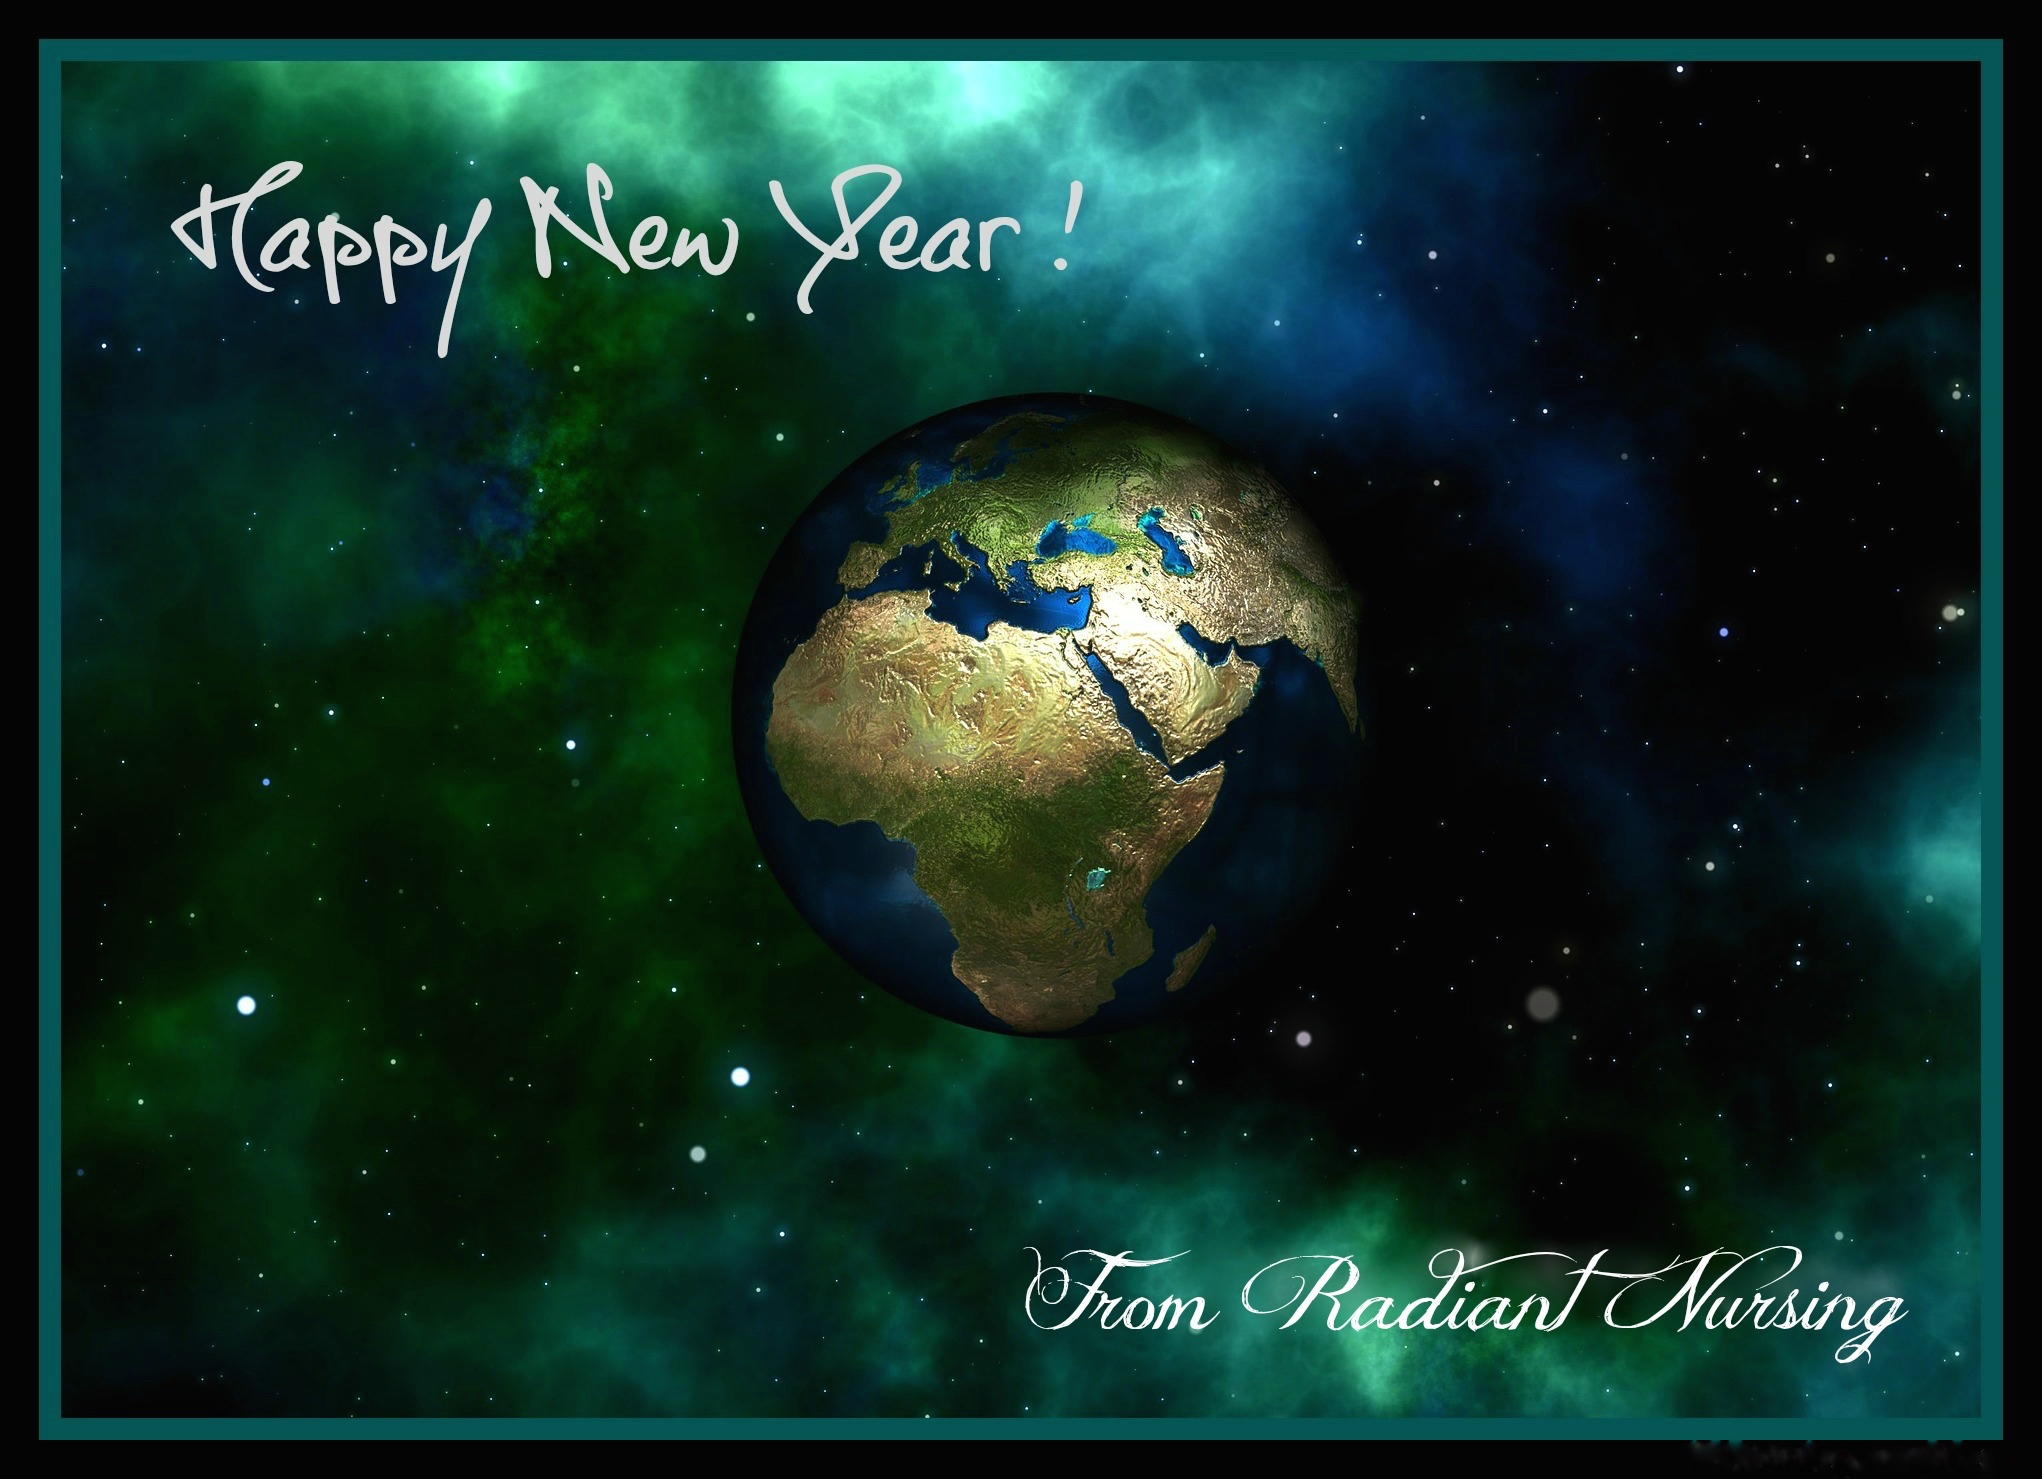 Happy New Year from Radiant Nursing.